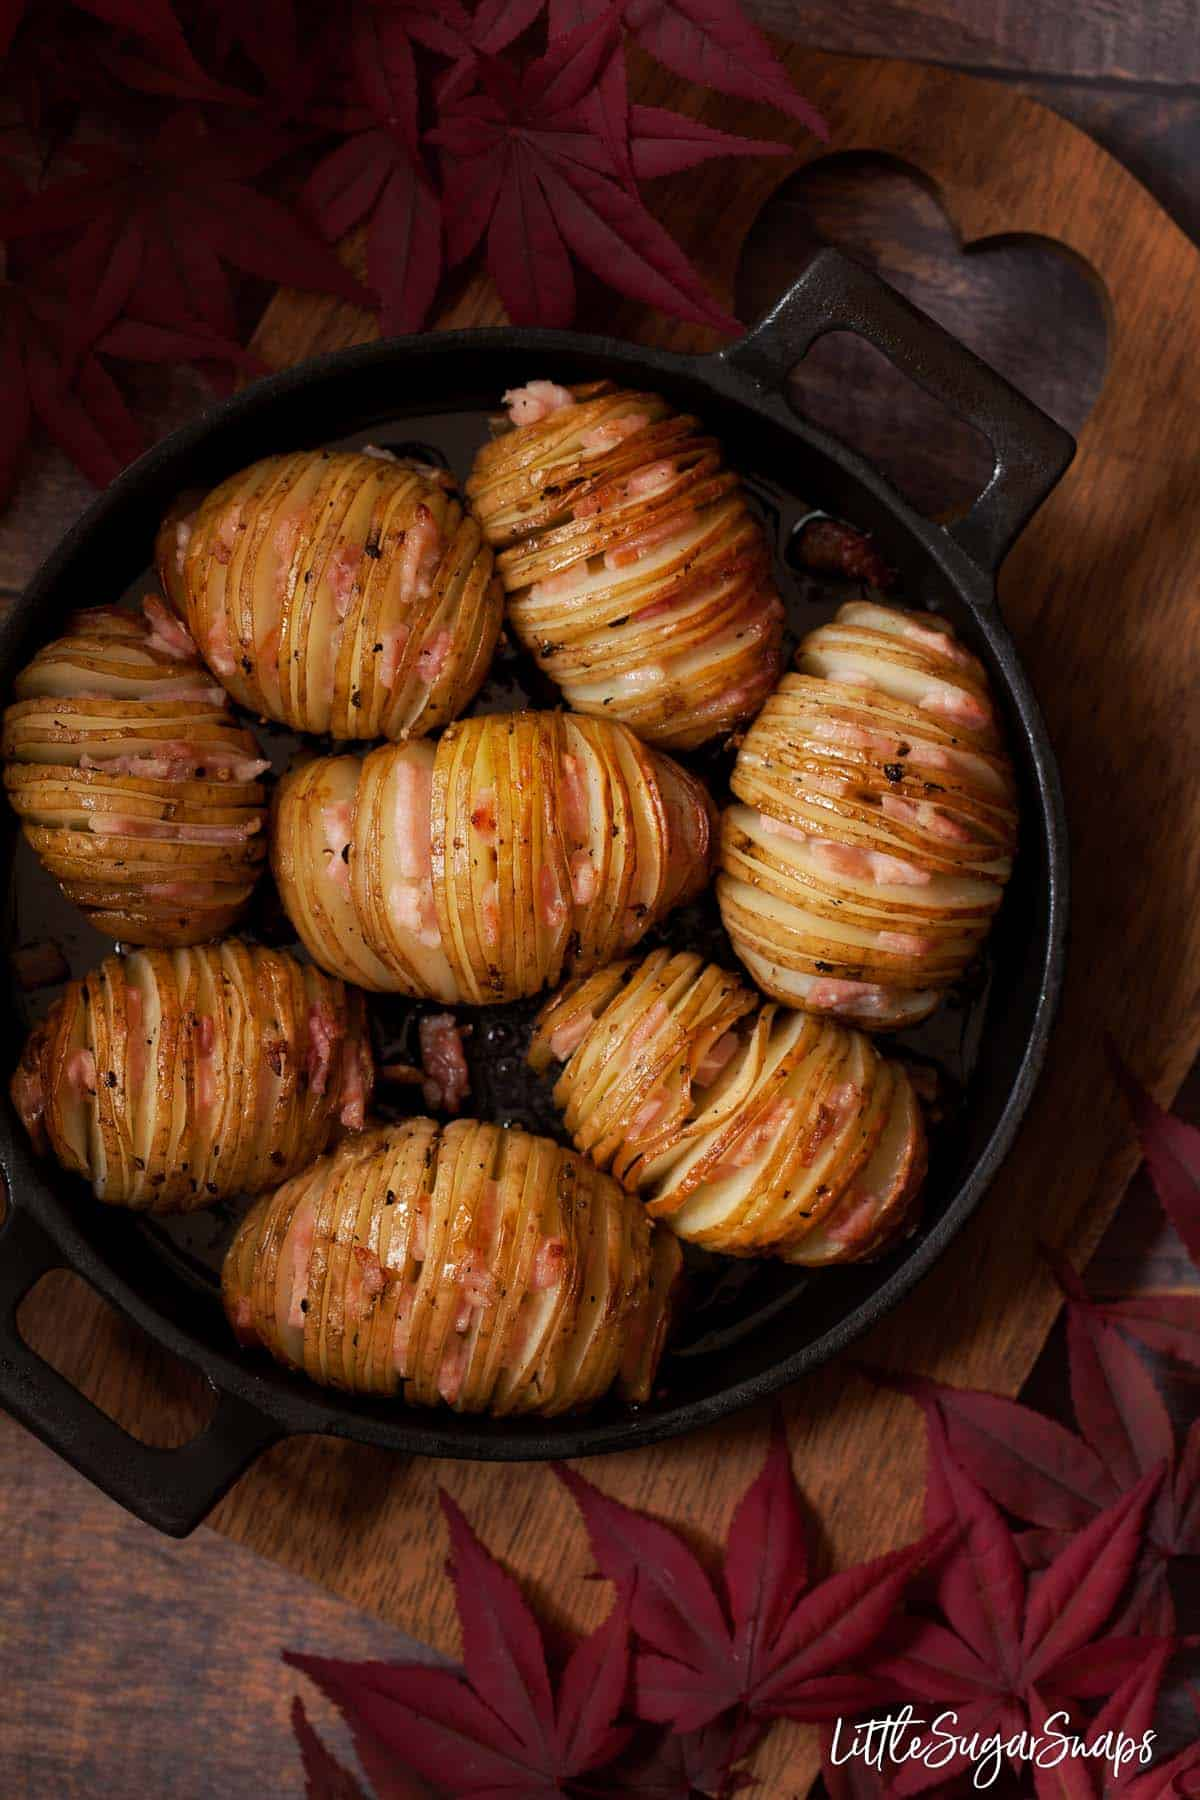 Cast iron skillet holding freshly baked hasselback potatoes stuffed with bacon.